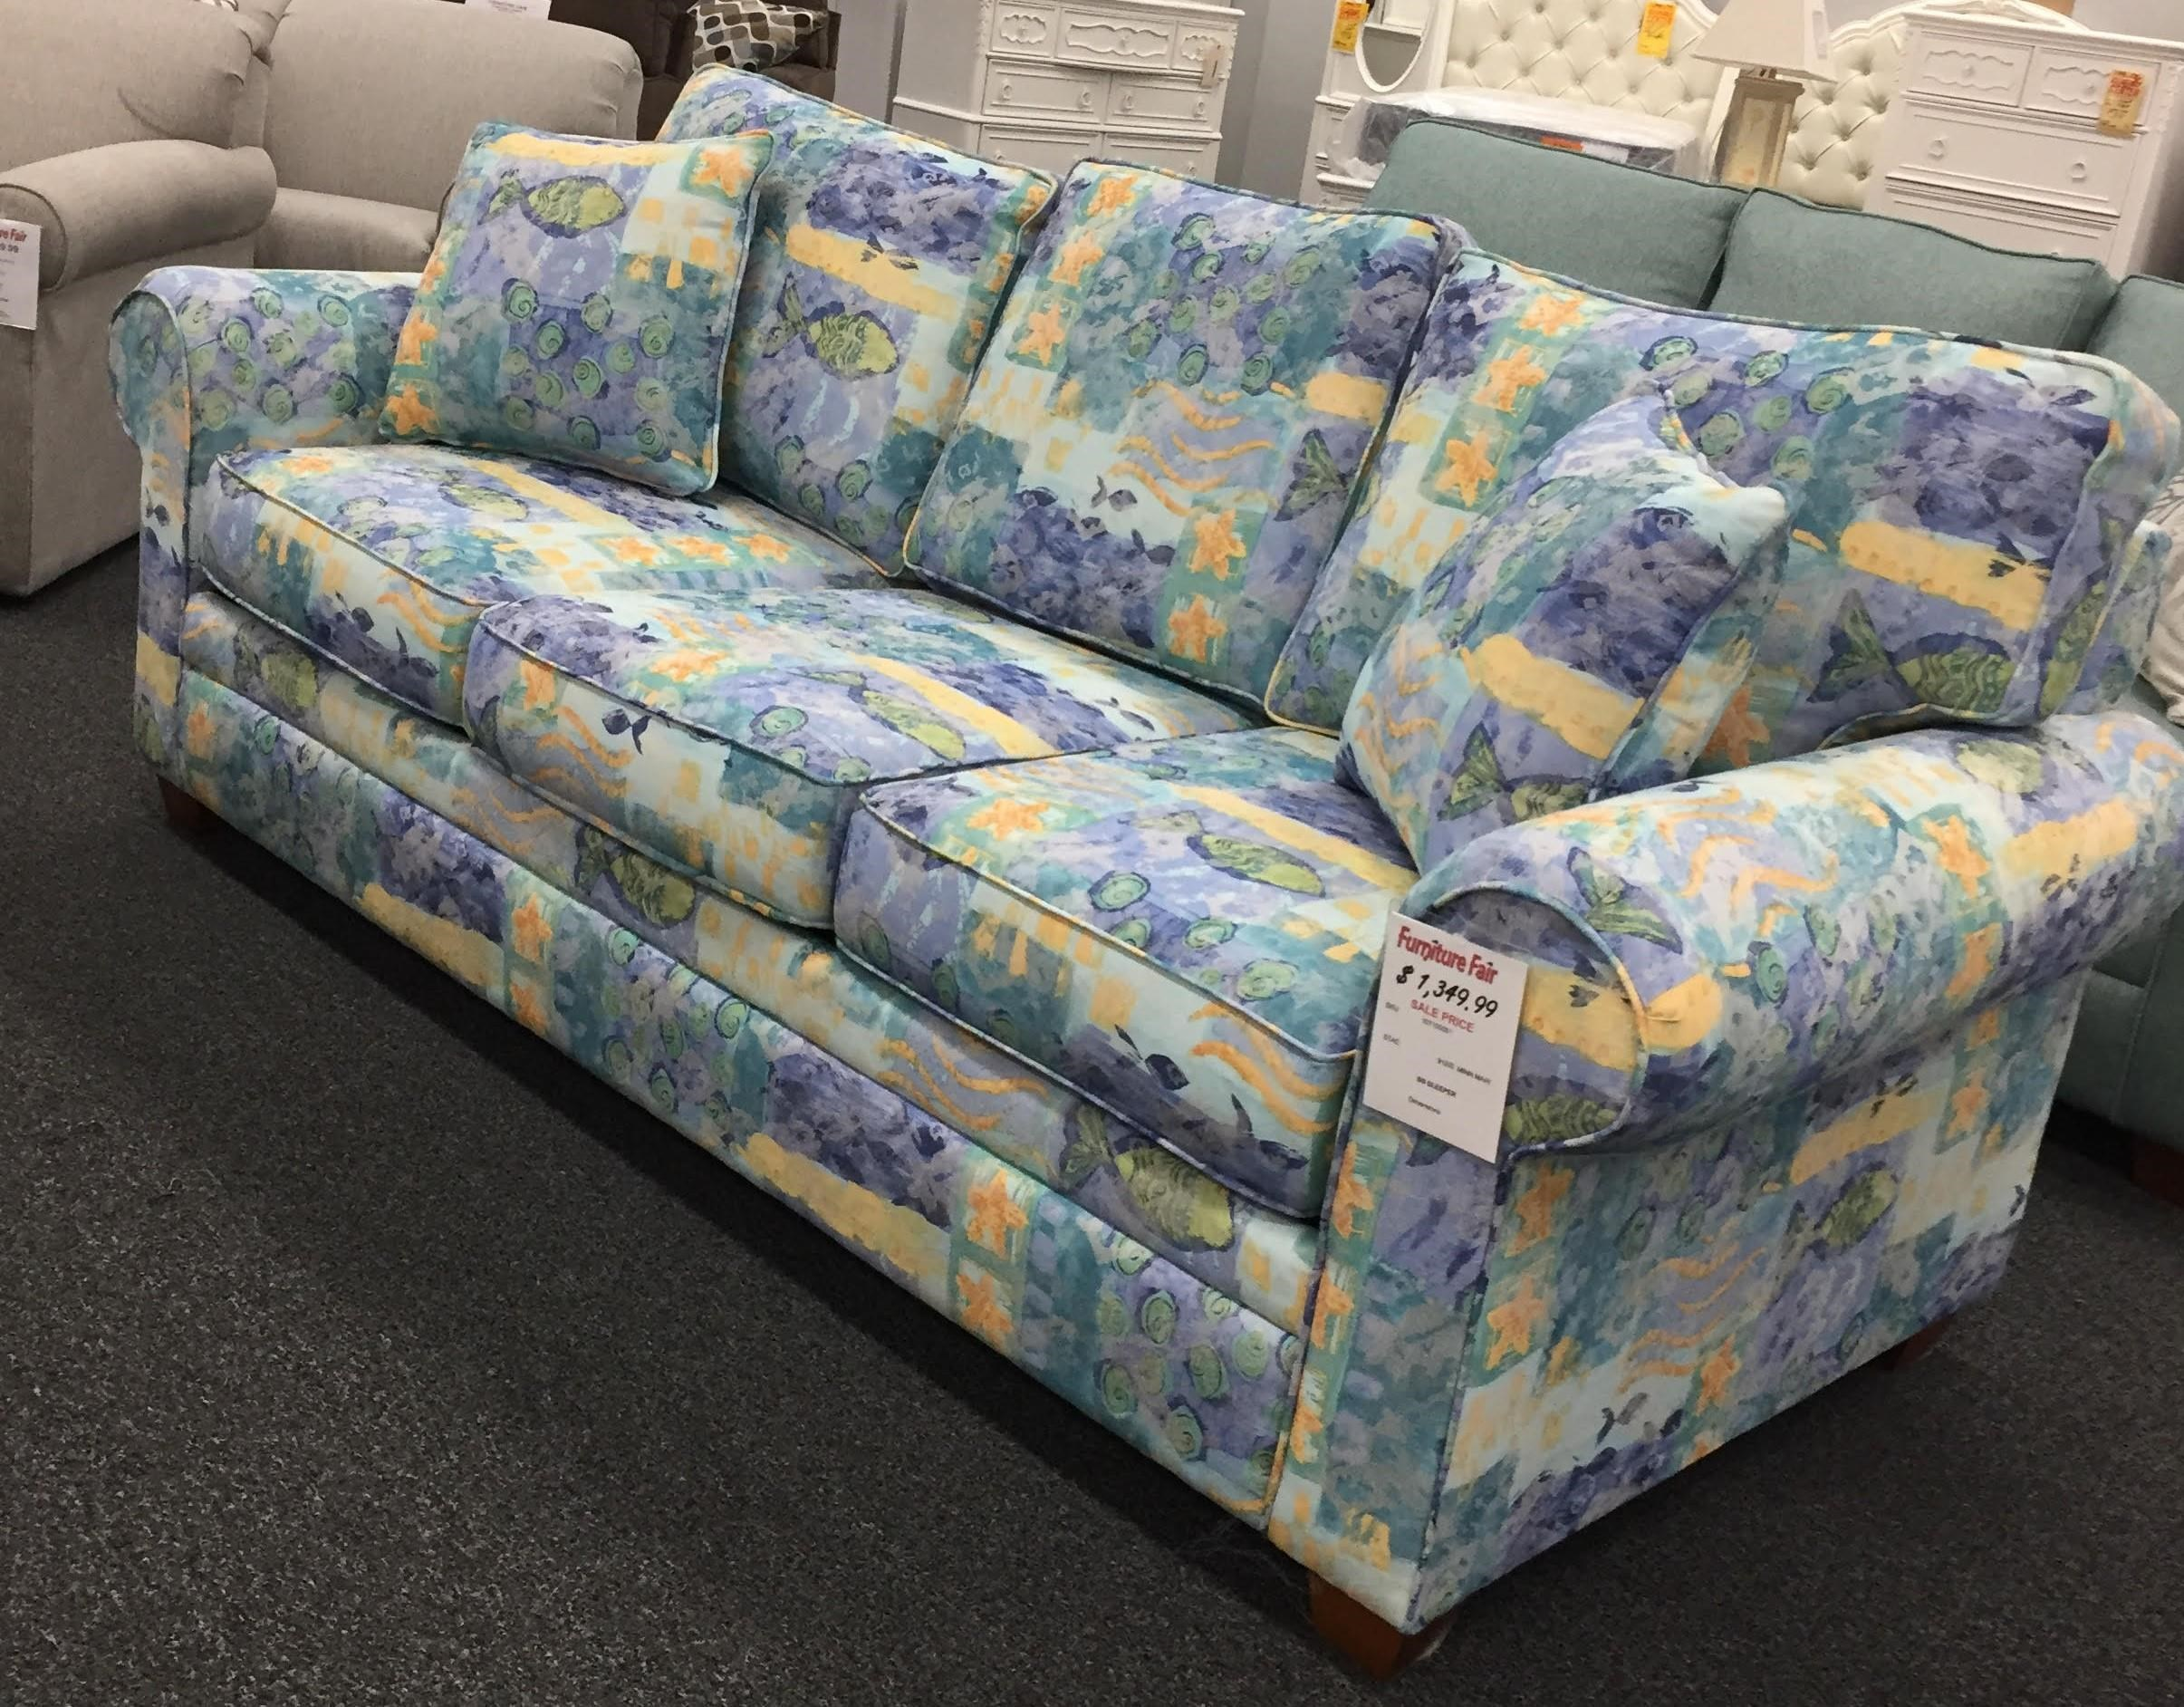 912Turquoise Queen Sleeper Sofa - MINNOW MARINE by Stanley Chair Company at Furniture Fair - North Carolina